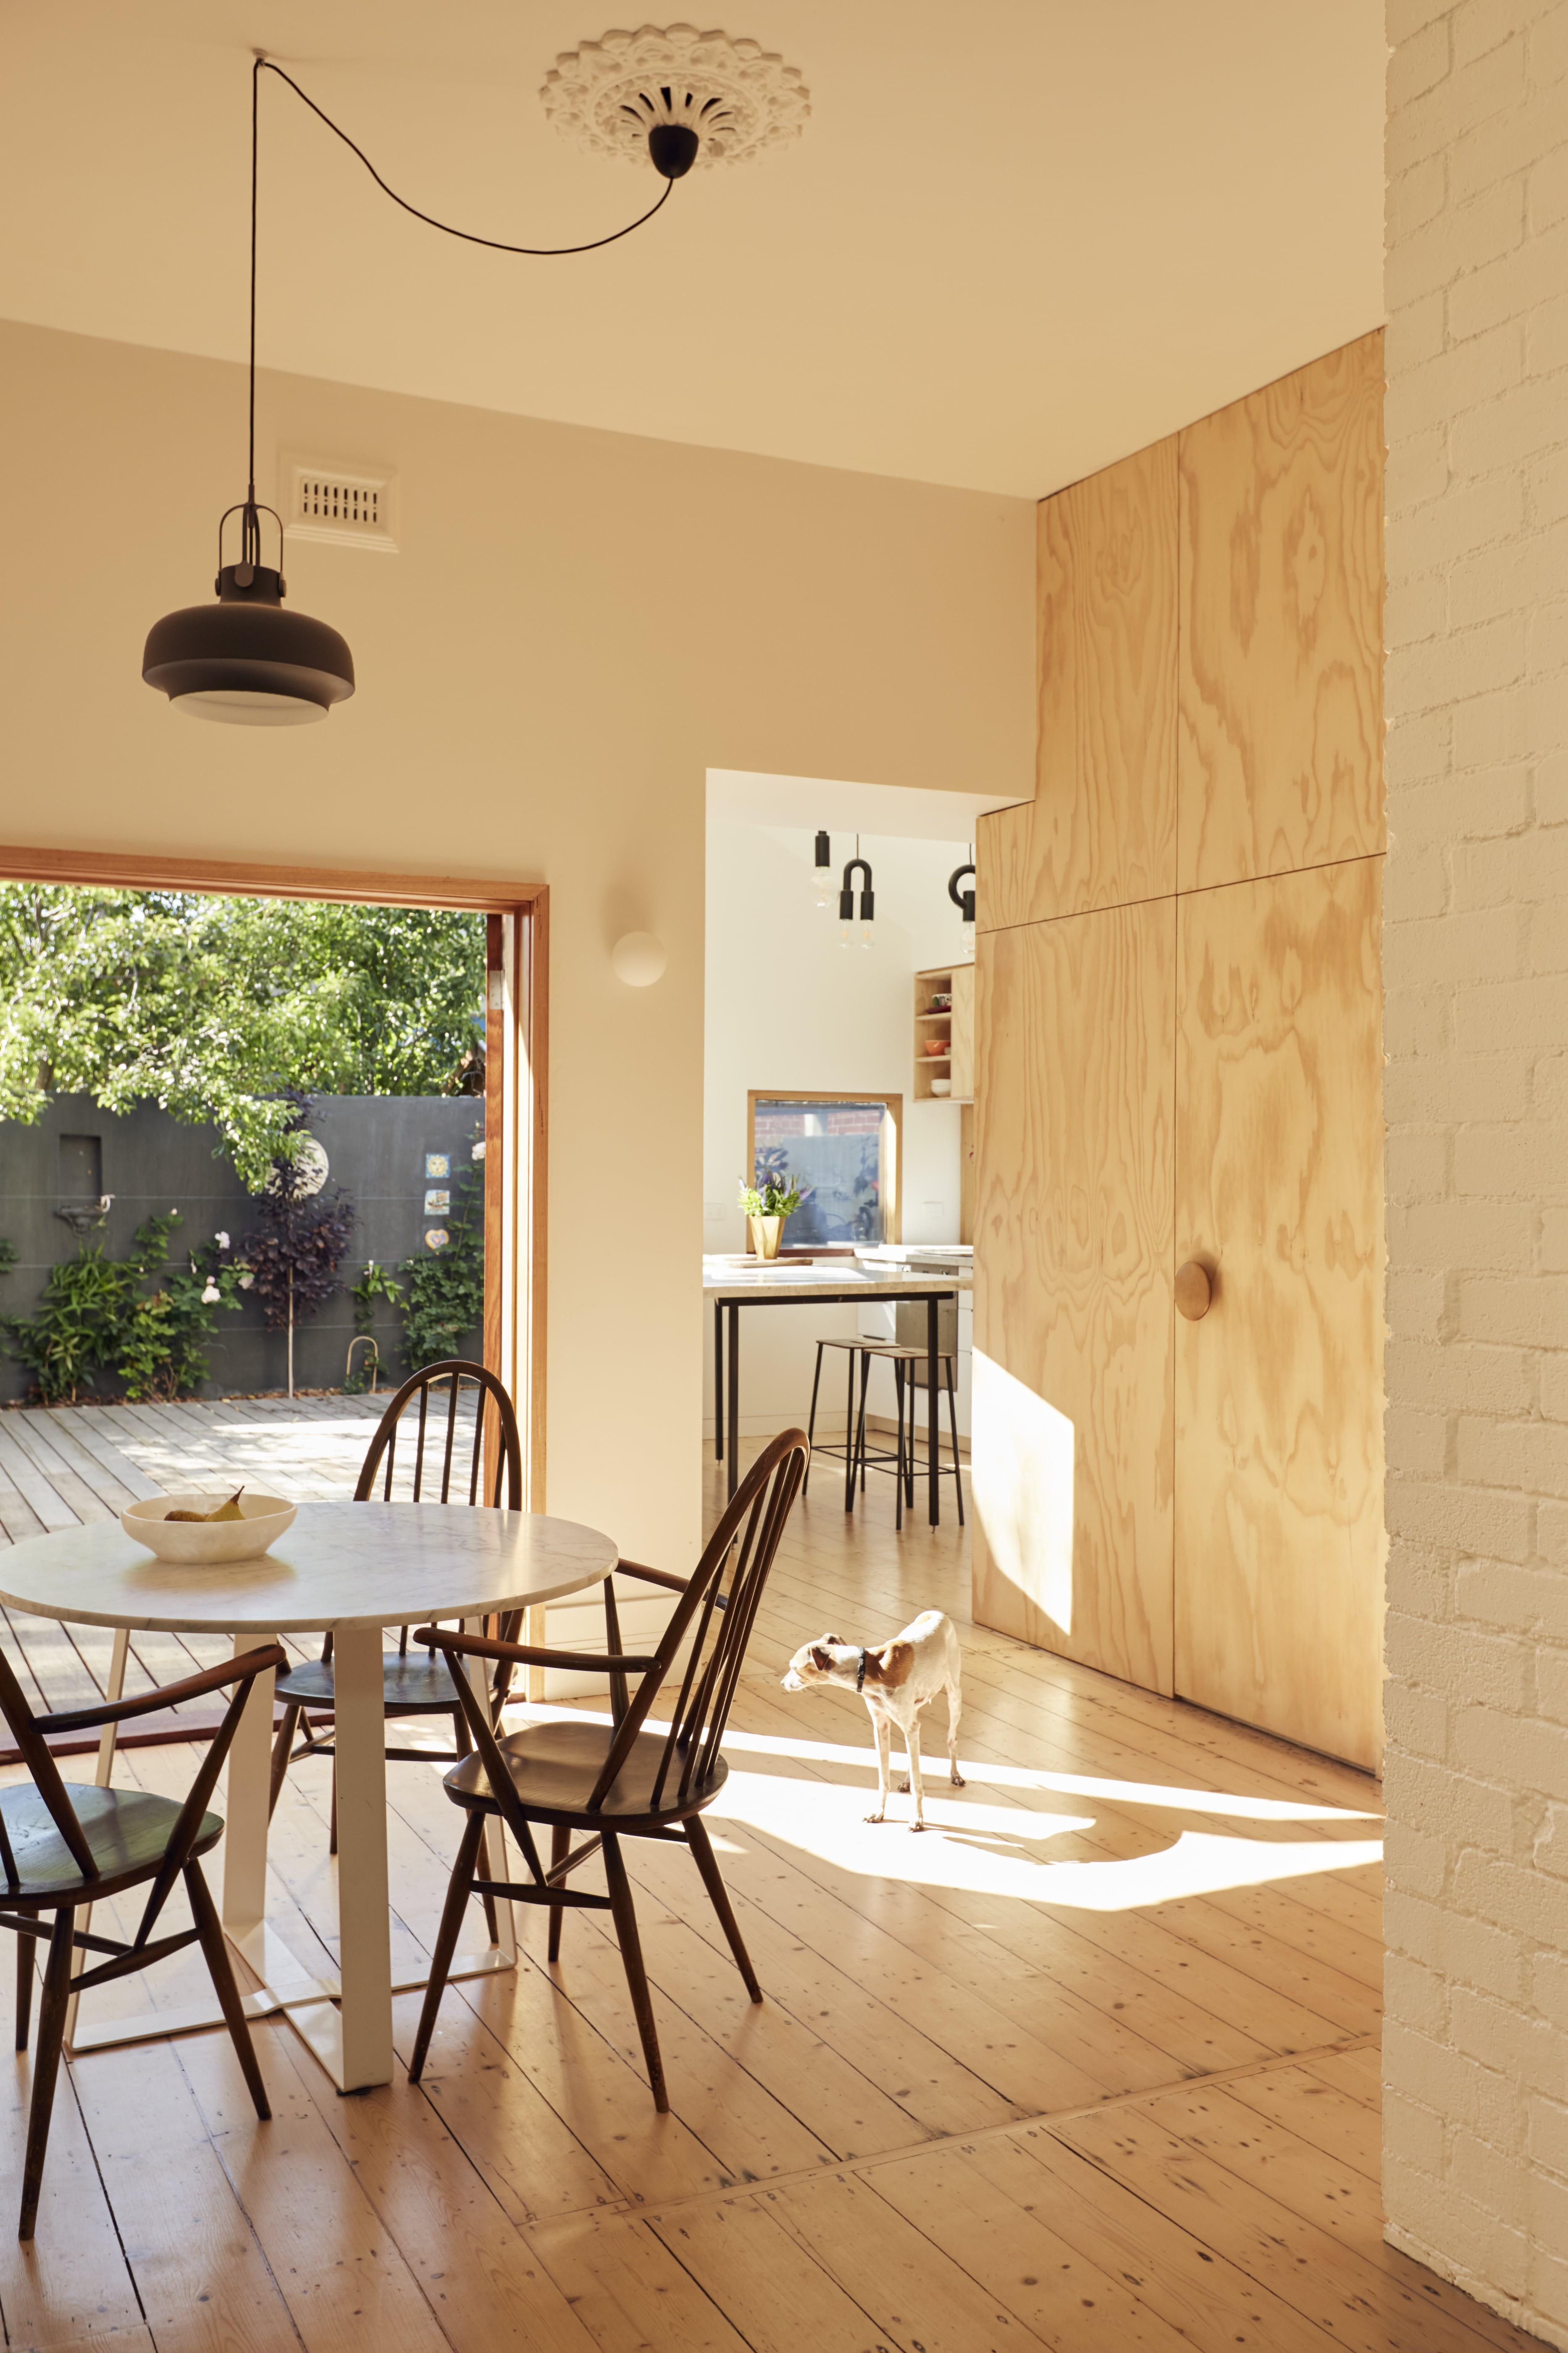 Gallery Of St Kilda East House By Claire Scorpo Local Australian Architecture & Design Melbourne Image 1